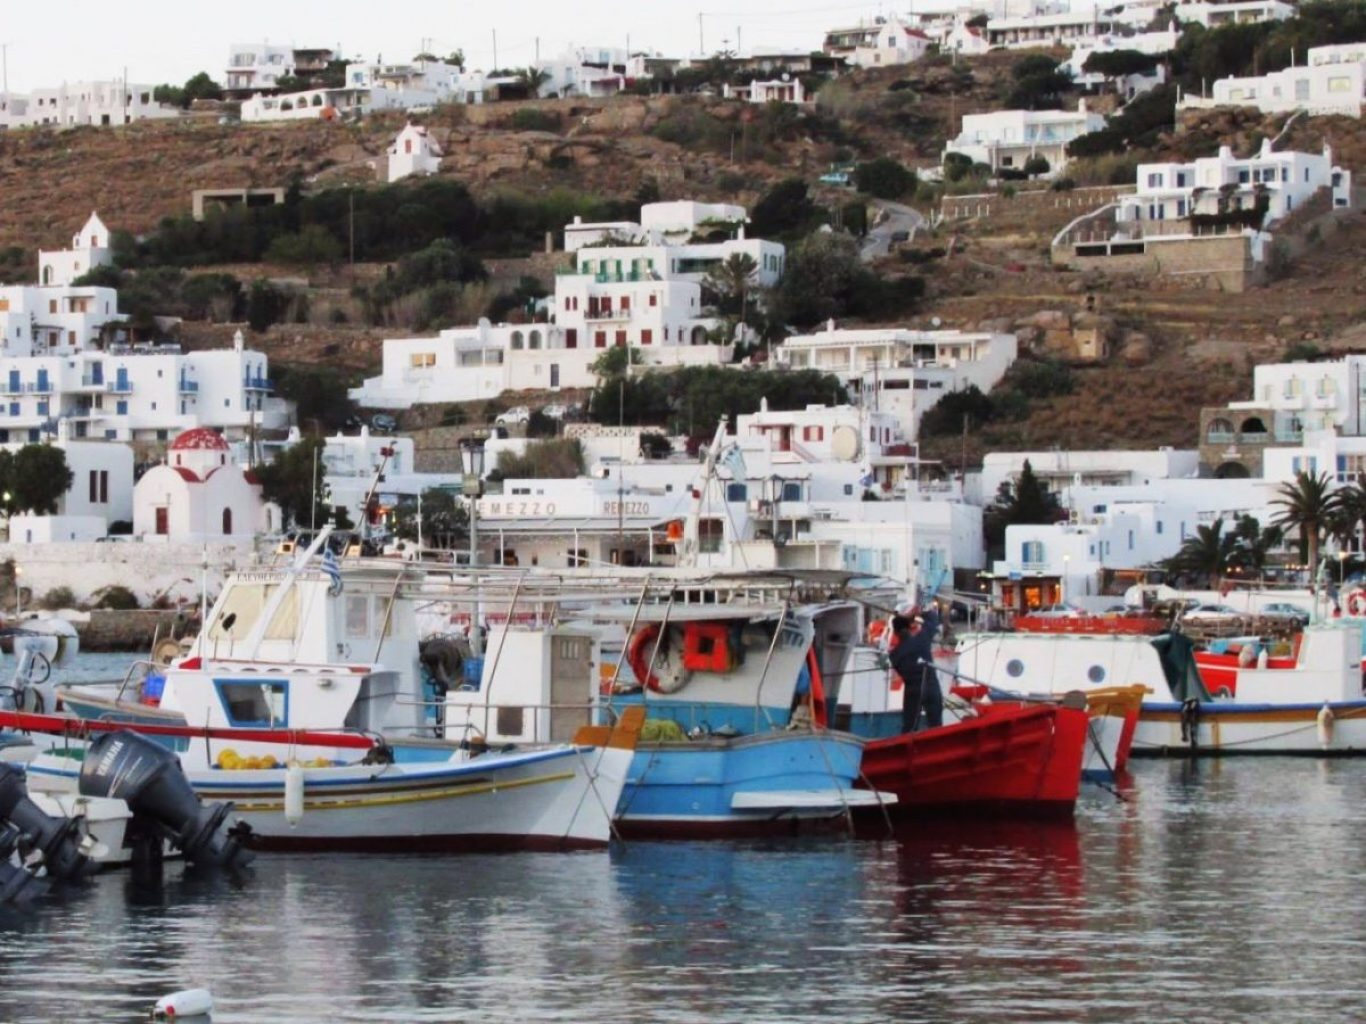 Boats docked in Mykonos